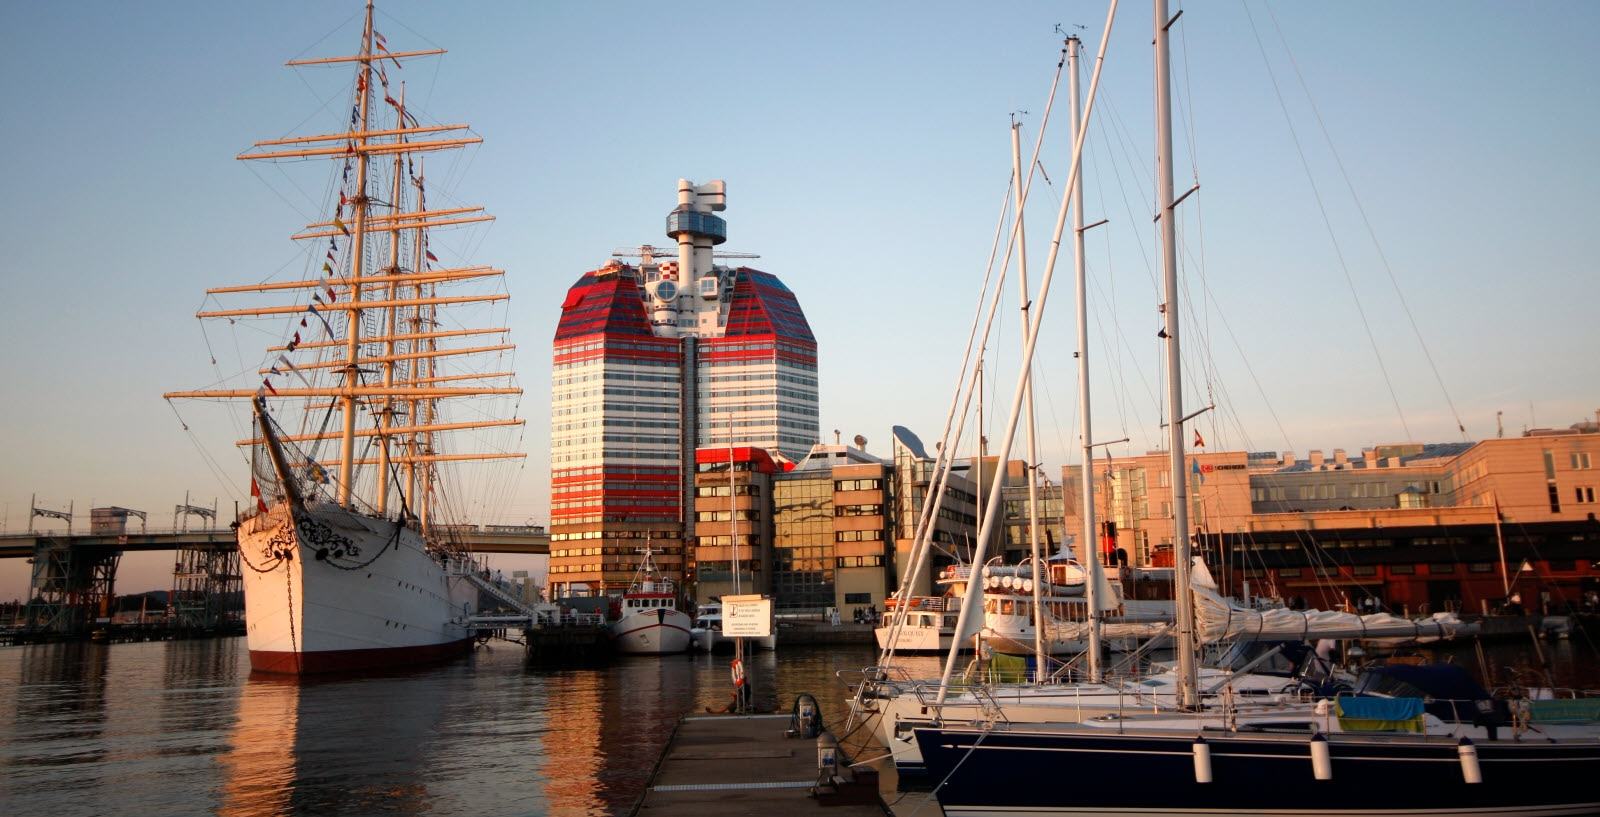 Harbour Gothenburg